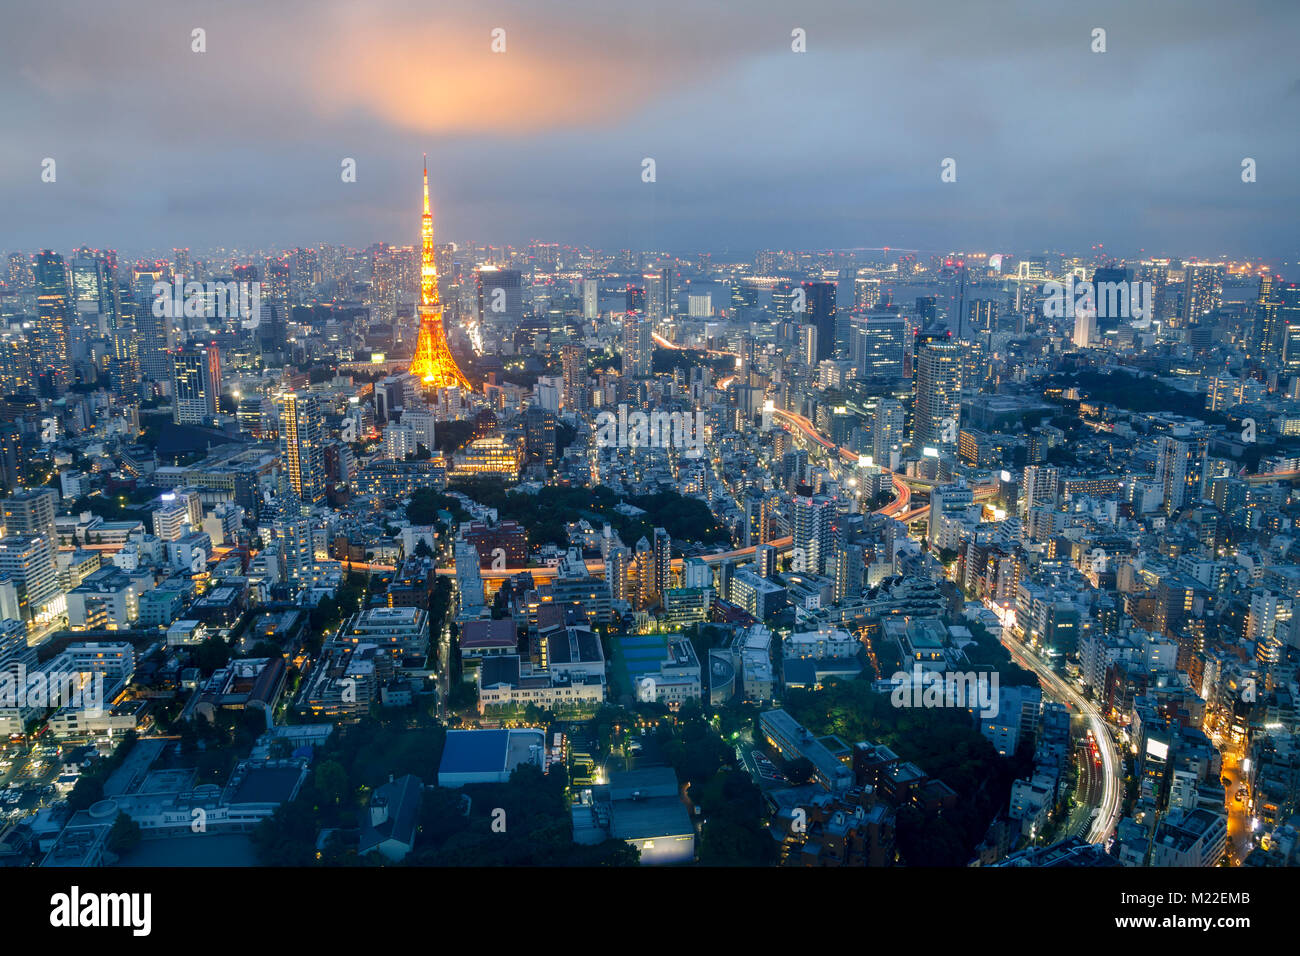 Tokyo skyline at sunset, with the famous tower of Tokyo - Stock Image